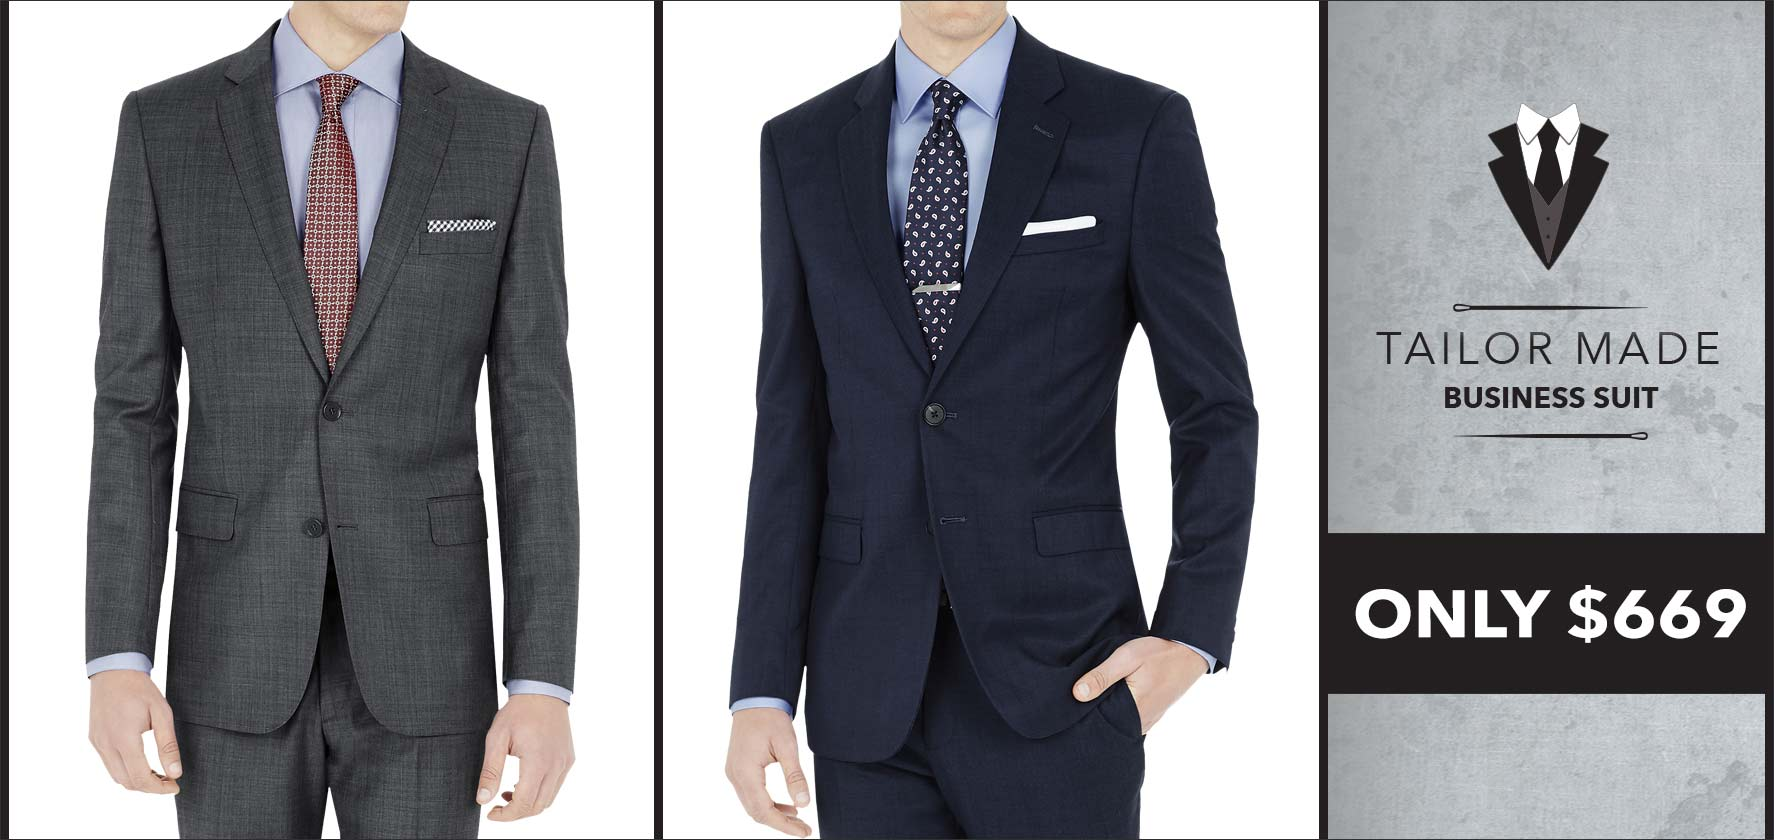 Tailor Made Business Suit